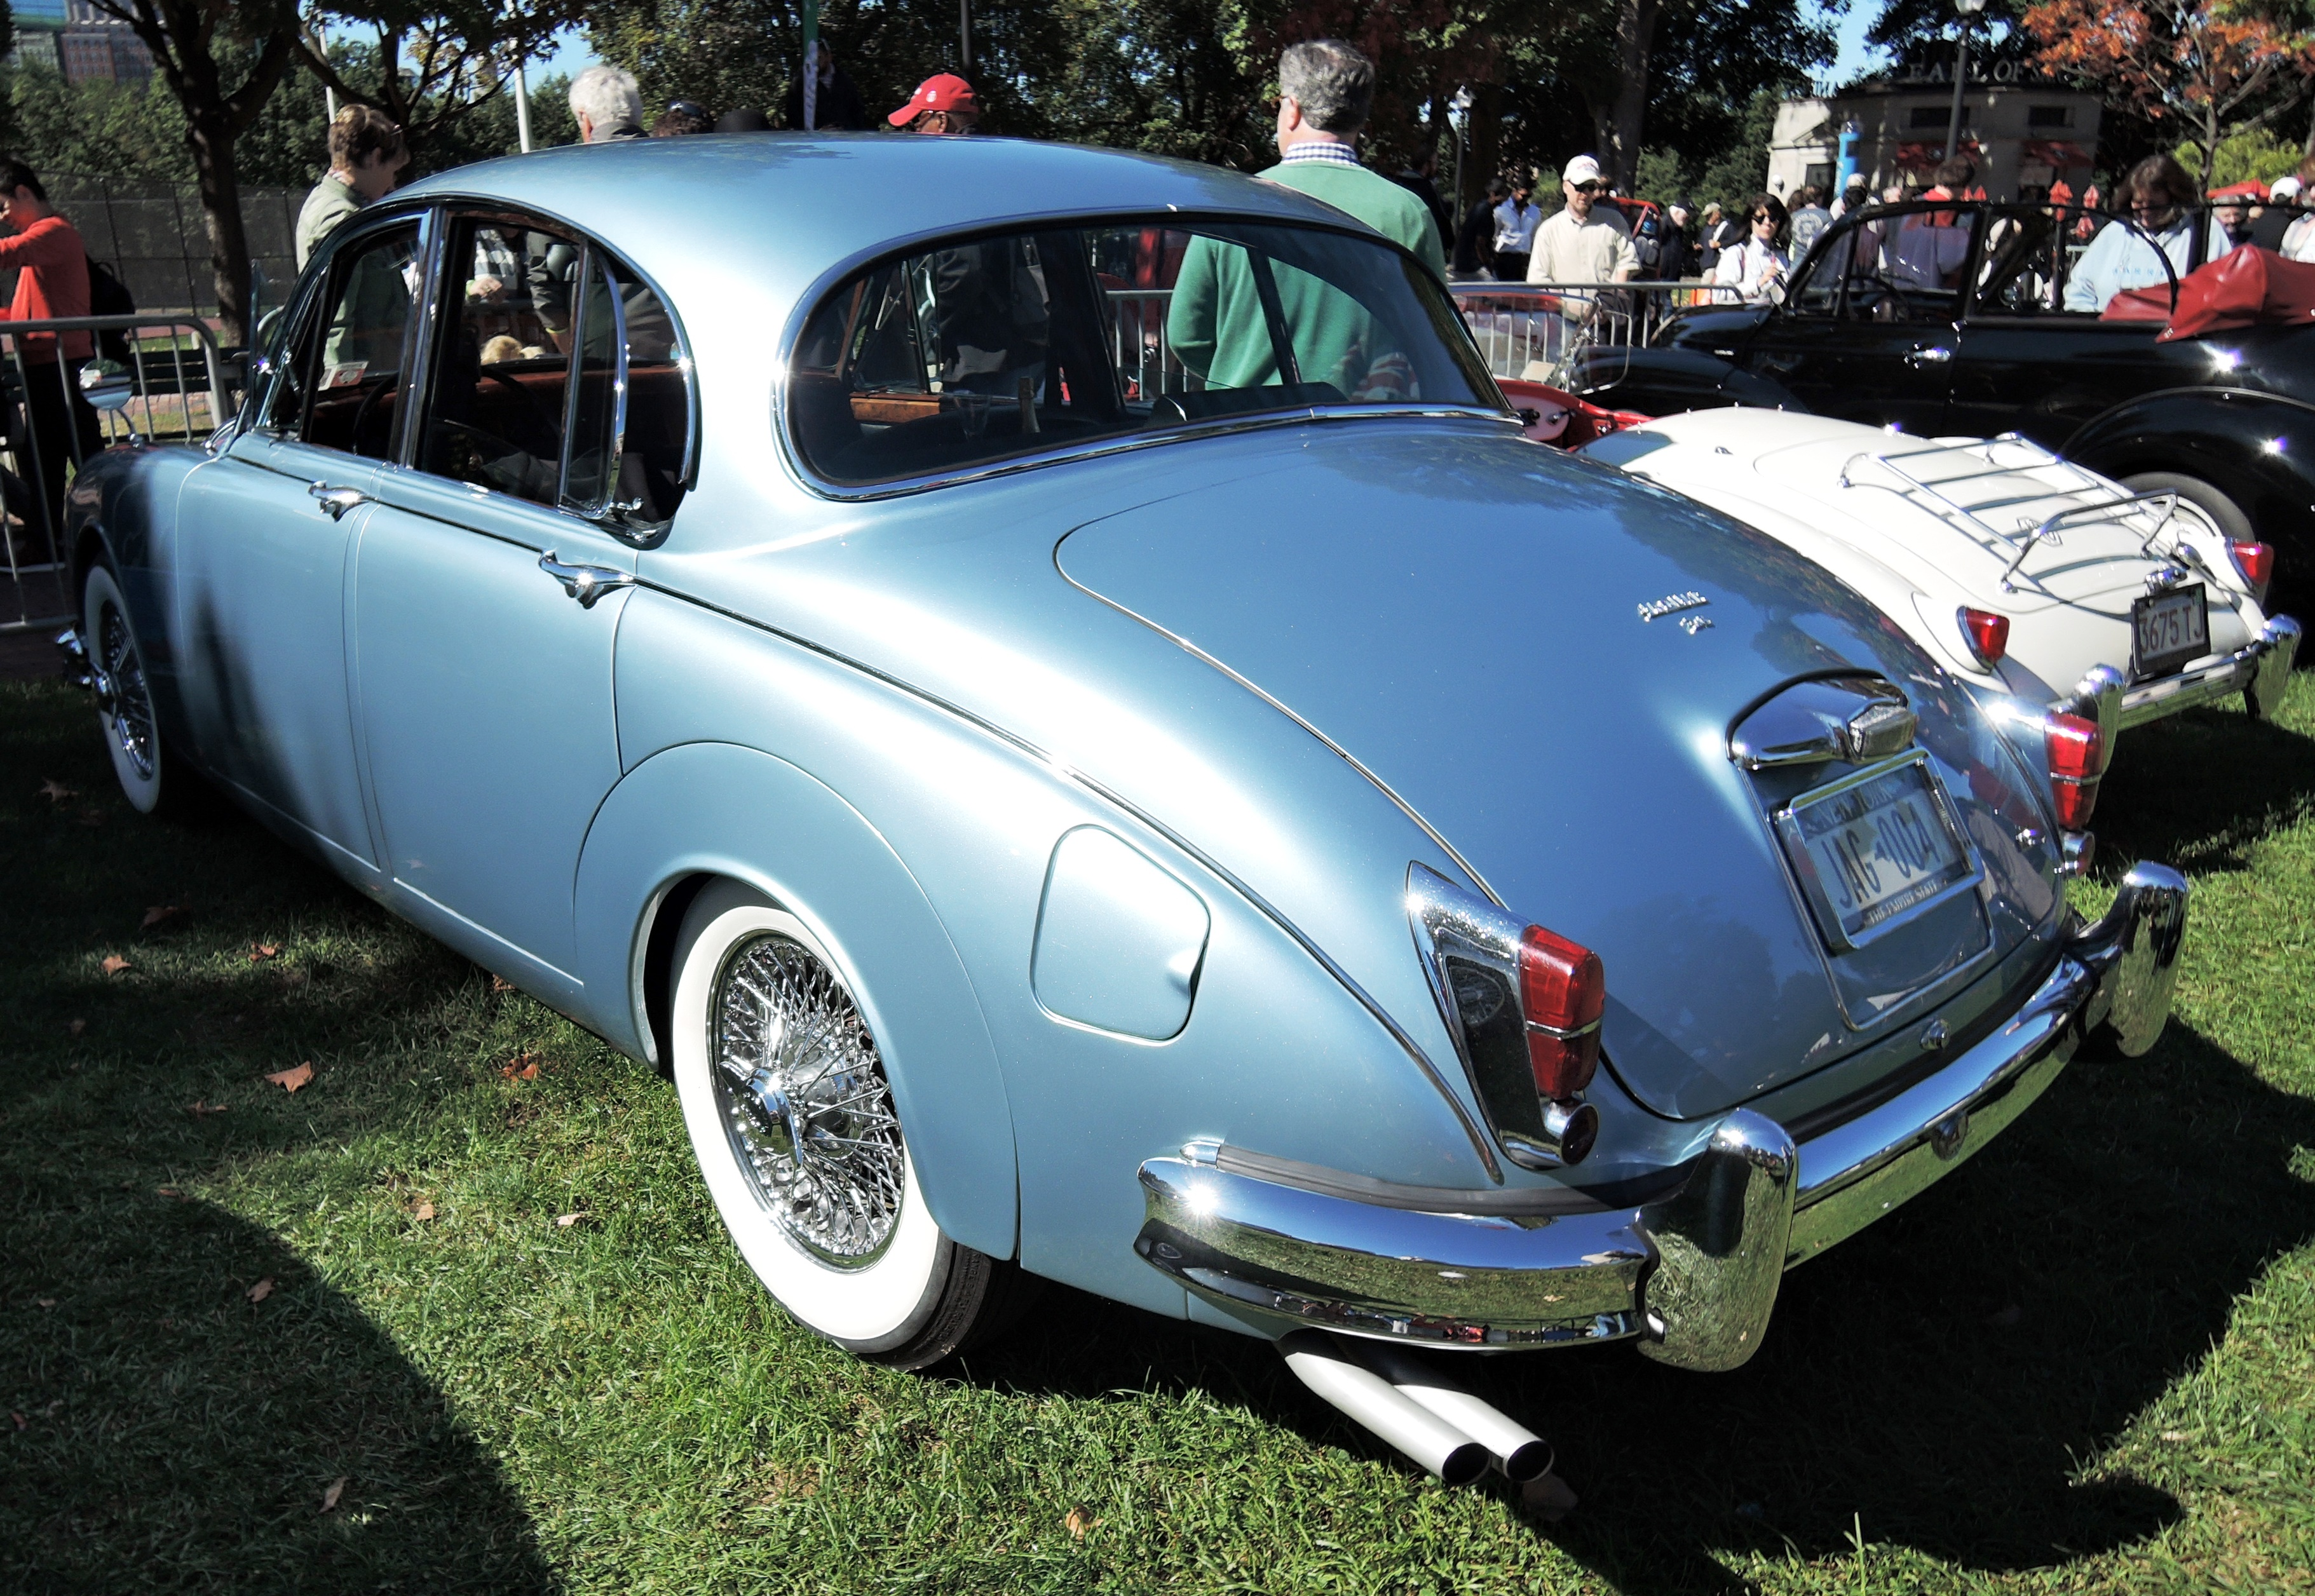 blue 1964 Jaguar Mark II - The Boston Cup on Boston Common